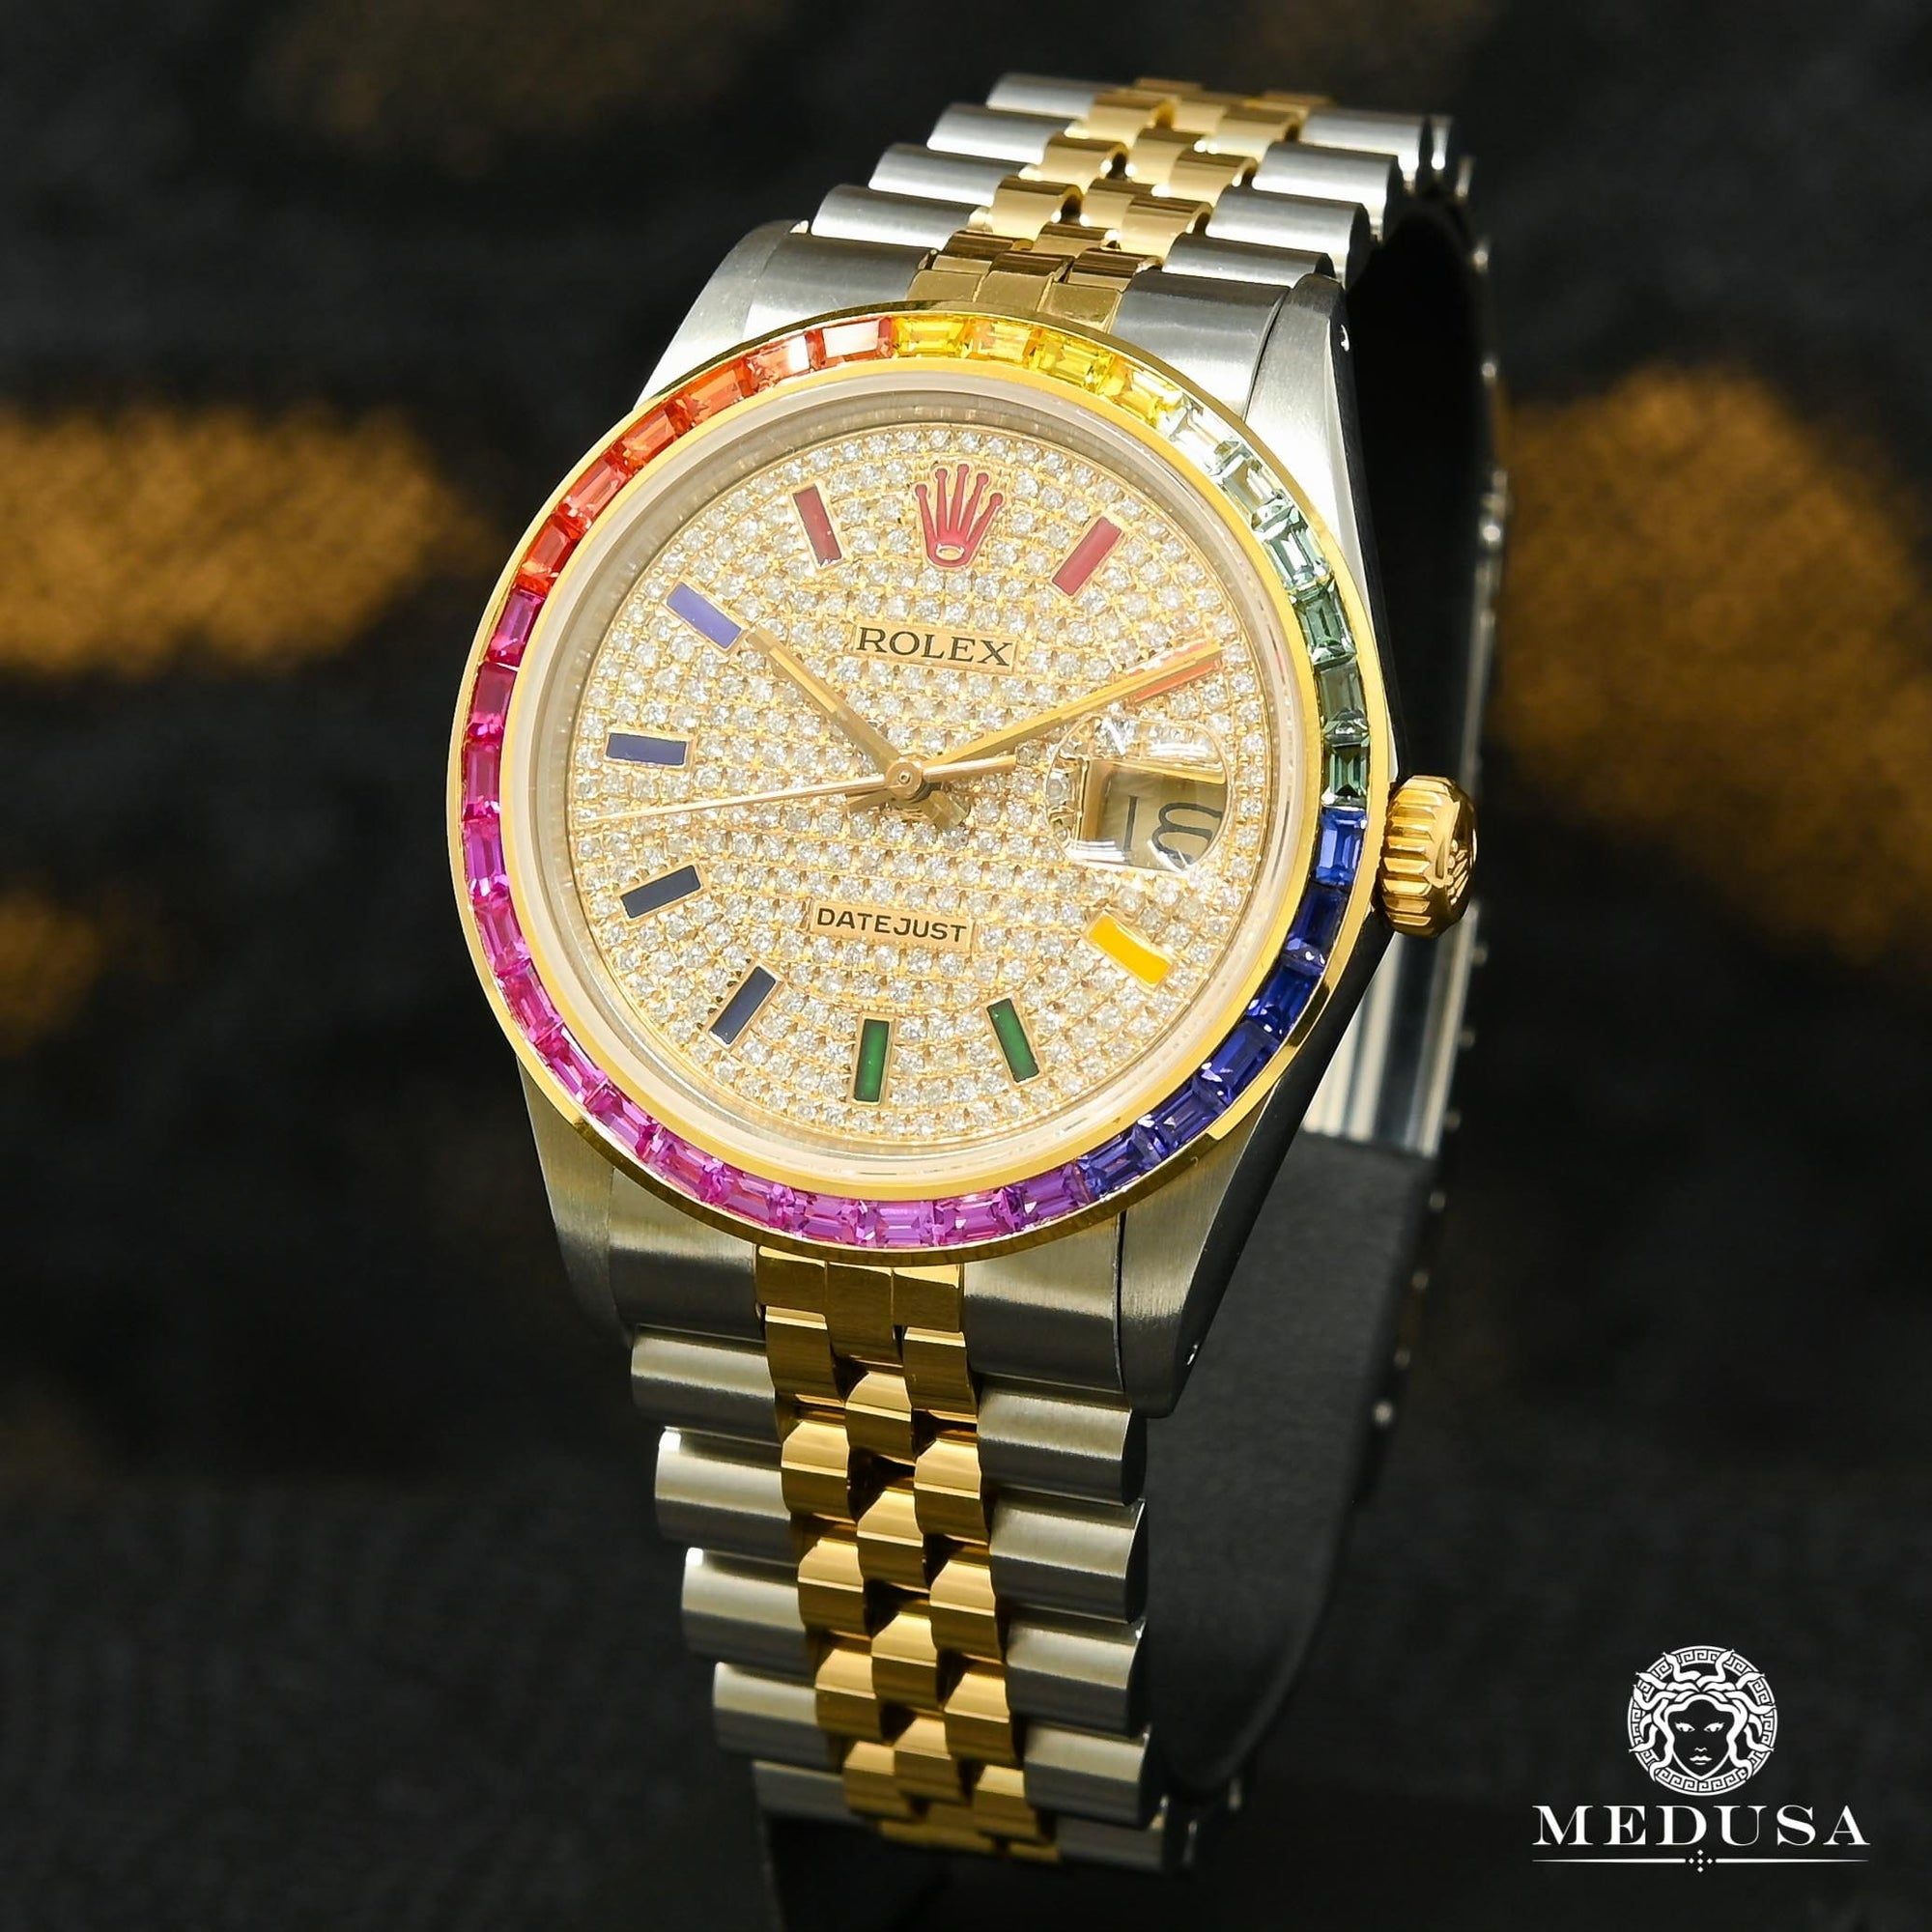 Rolex Datejust 36mm - Iced Rainbow